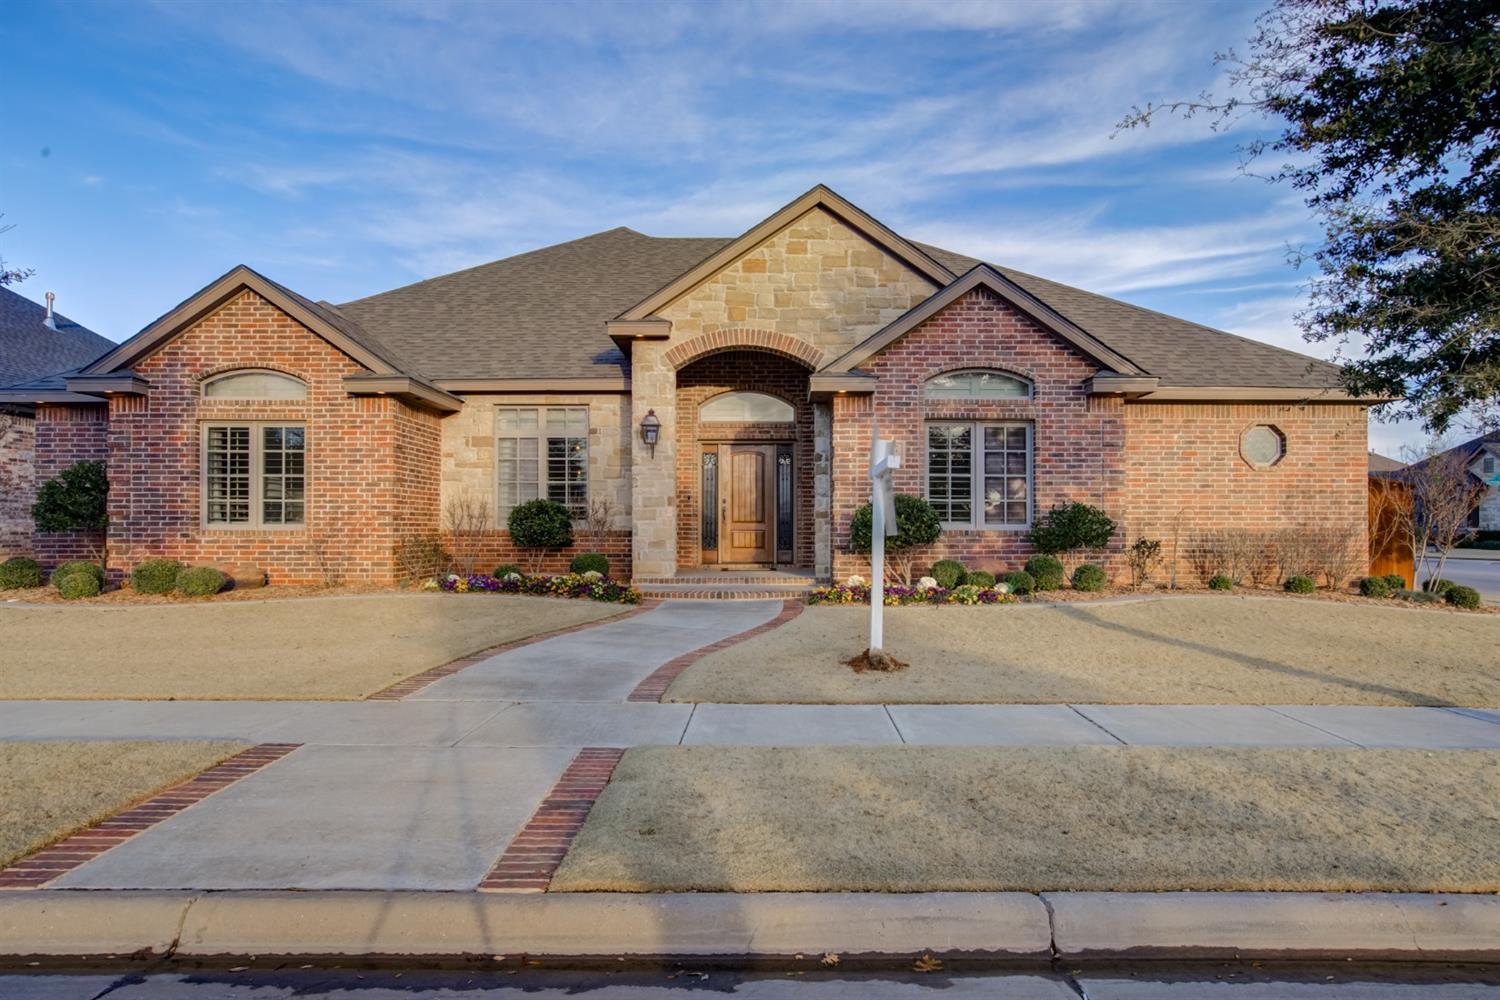 This gorgeous custom home is located in the prestigious Trails At Regal Park.  You can enjoy the beautiful park which is in walking distance. Entering you will be welcomed by hardwood floors and a 15 ft cathedral ceiling which opens up to the kitchen and both eating areas. This home was designed for entertaining. Stone fireplace in living room with custom cabinetry, really makes a statement. Formal dining with 2 archways to enter, casual dining room with wood burning fireplace. Kitchen has stainless steel appliances, including gas stove top, double ovens, microwave, dishwasher and wine fridge. All of this surrounded by lots of custom cabinets and a wrap around breakfast bar. Huge walk in pantry and office nook off the kitchen. Isolated master with separate corner tub, walk in shower and large walk in closet. 2nd isolated bedroom and bath, 4th bedroom with french doors could be great office. Basement for your leisure. Shutters throughout the home. 3 car garage, covered patio,large yard.